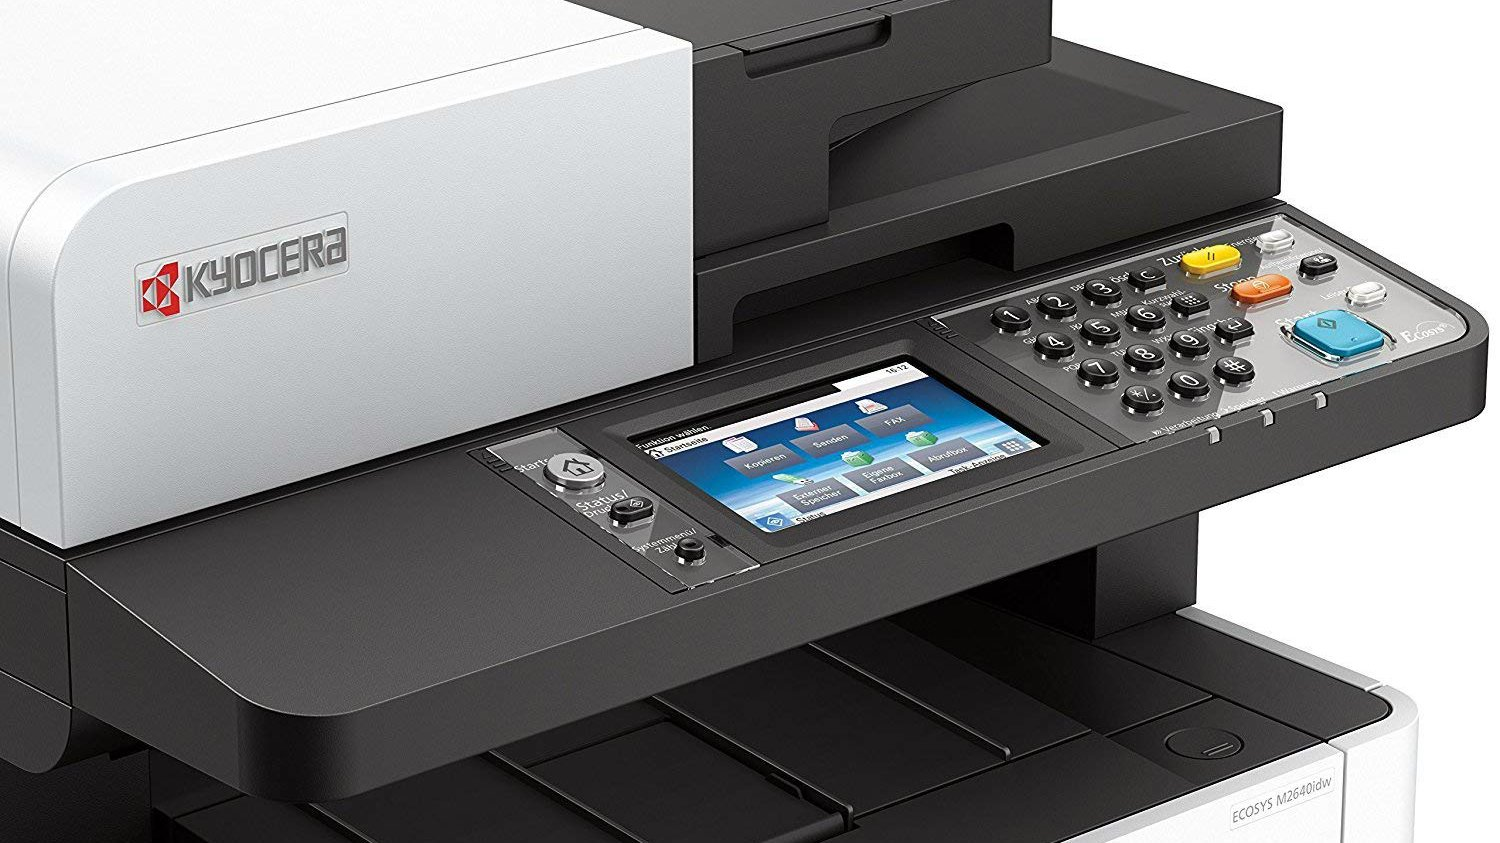 Kyocera Ecosys M2640idw review: A cheap-to-run MFP that produces